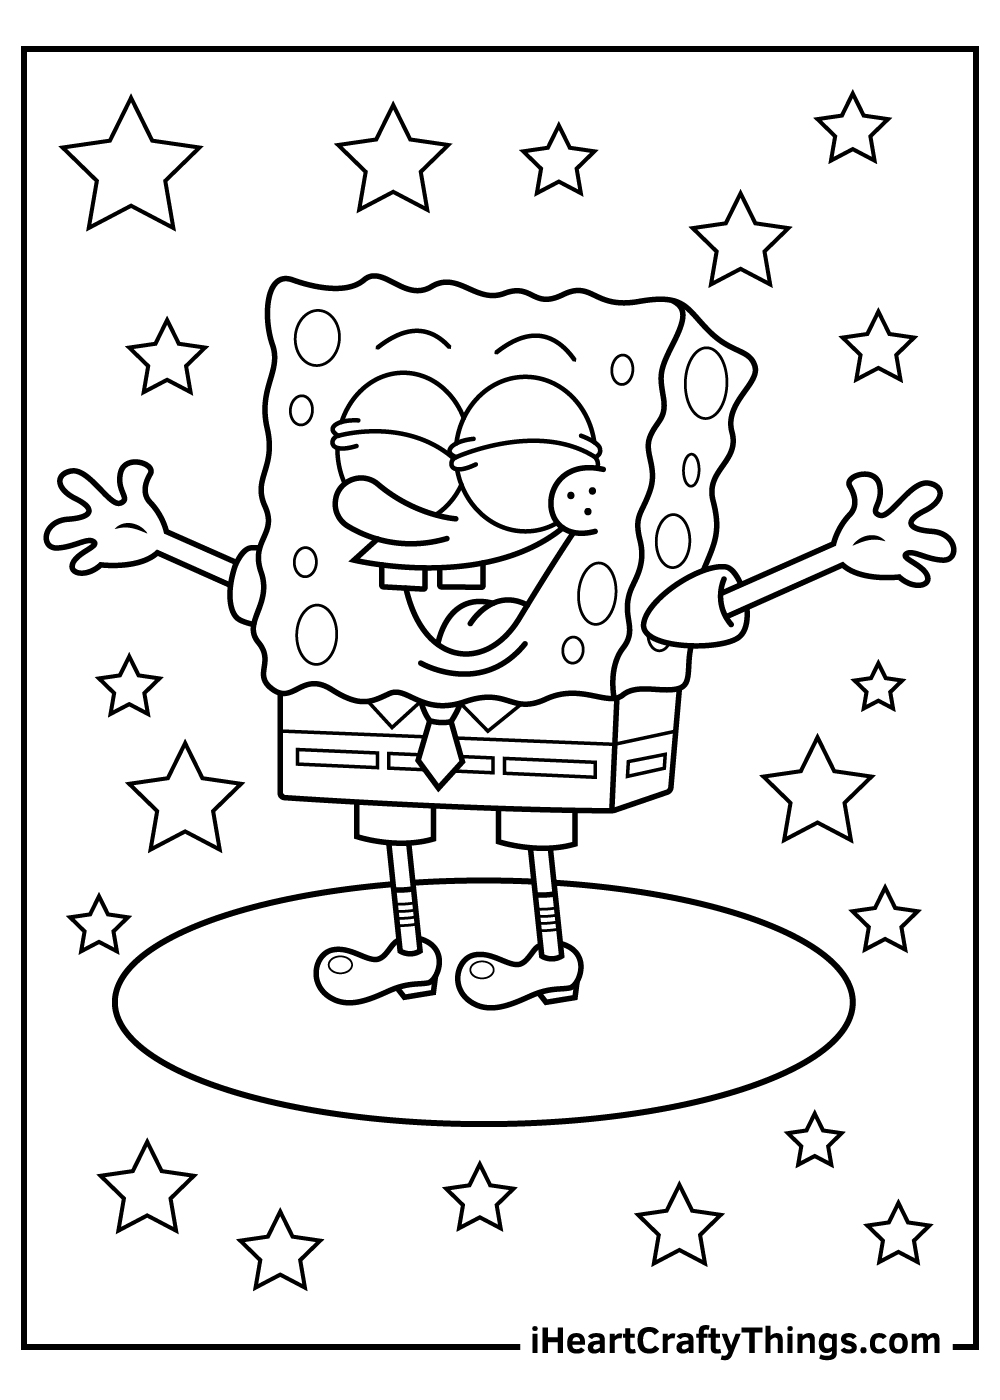 free printable spongebob coloring pages